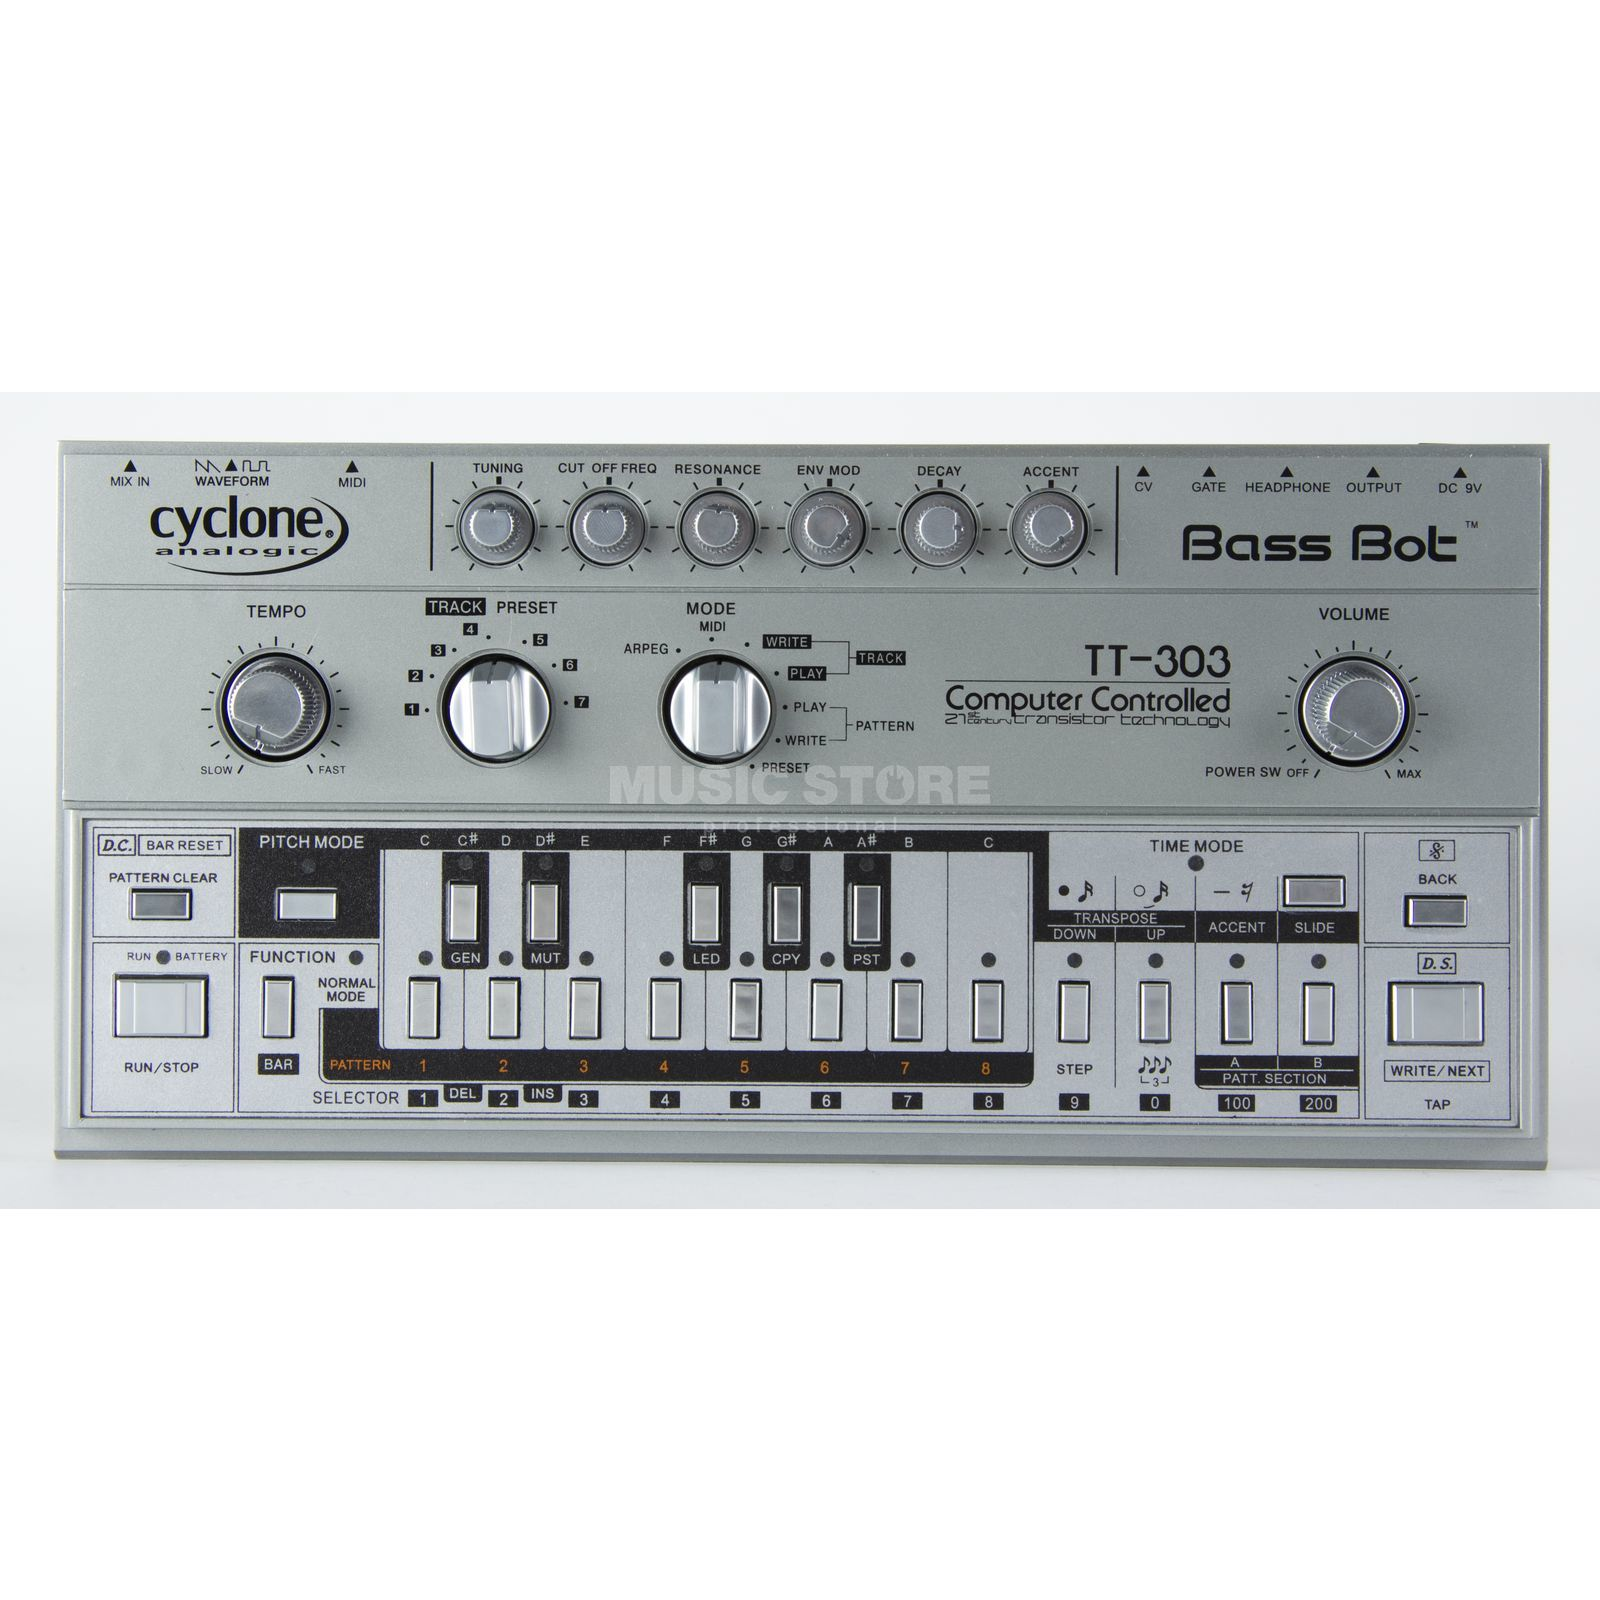 Cyclone Analogic TT-303 Bass Bot Produktbild